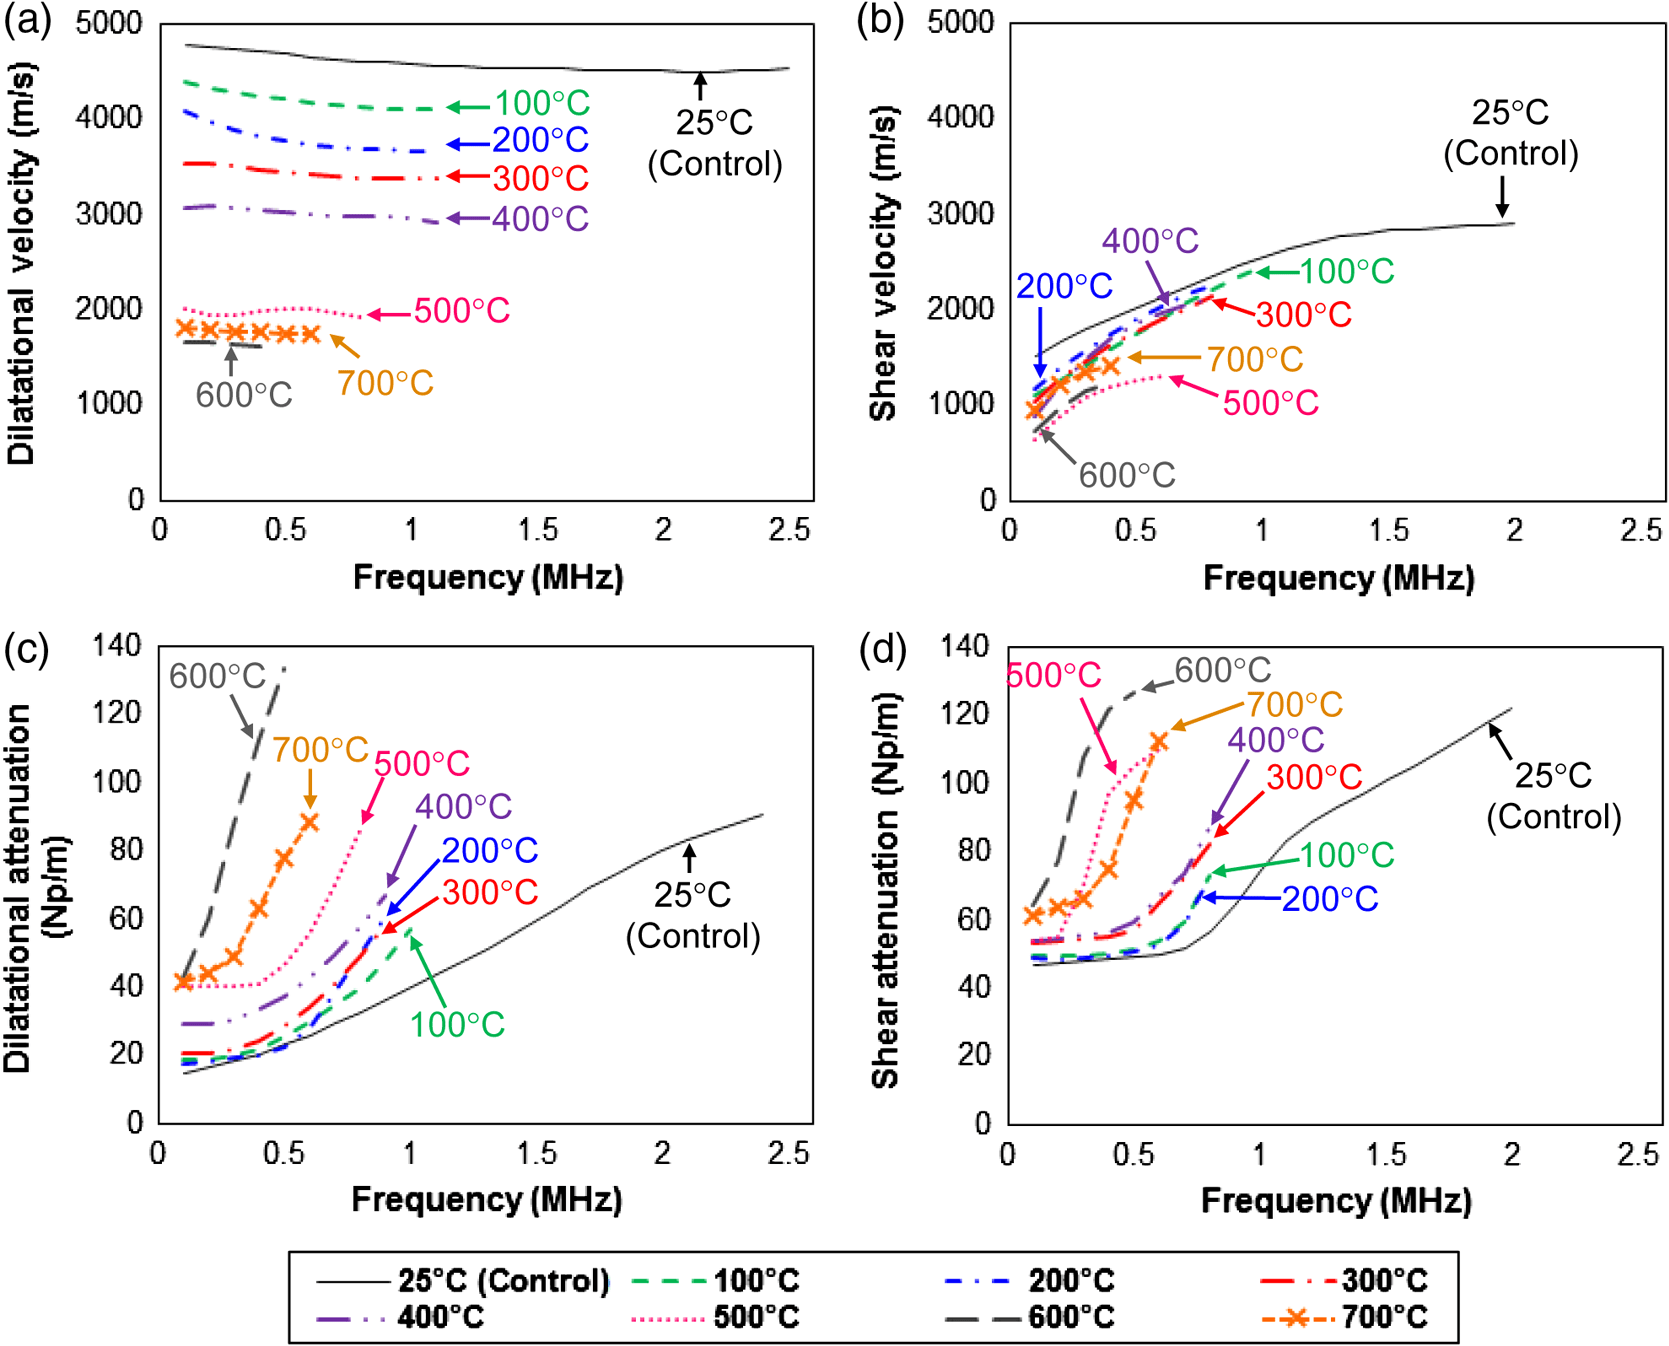 hight resolution of  function of frequency for the limestone specimens heated to various temperatures the color code is the same for both dilatational and shear velocities